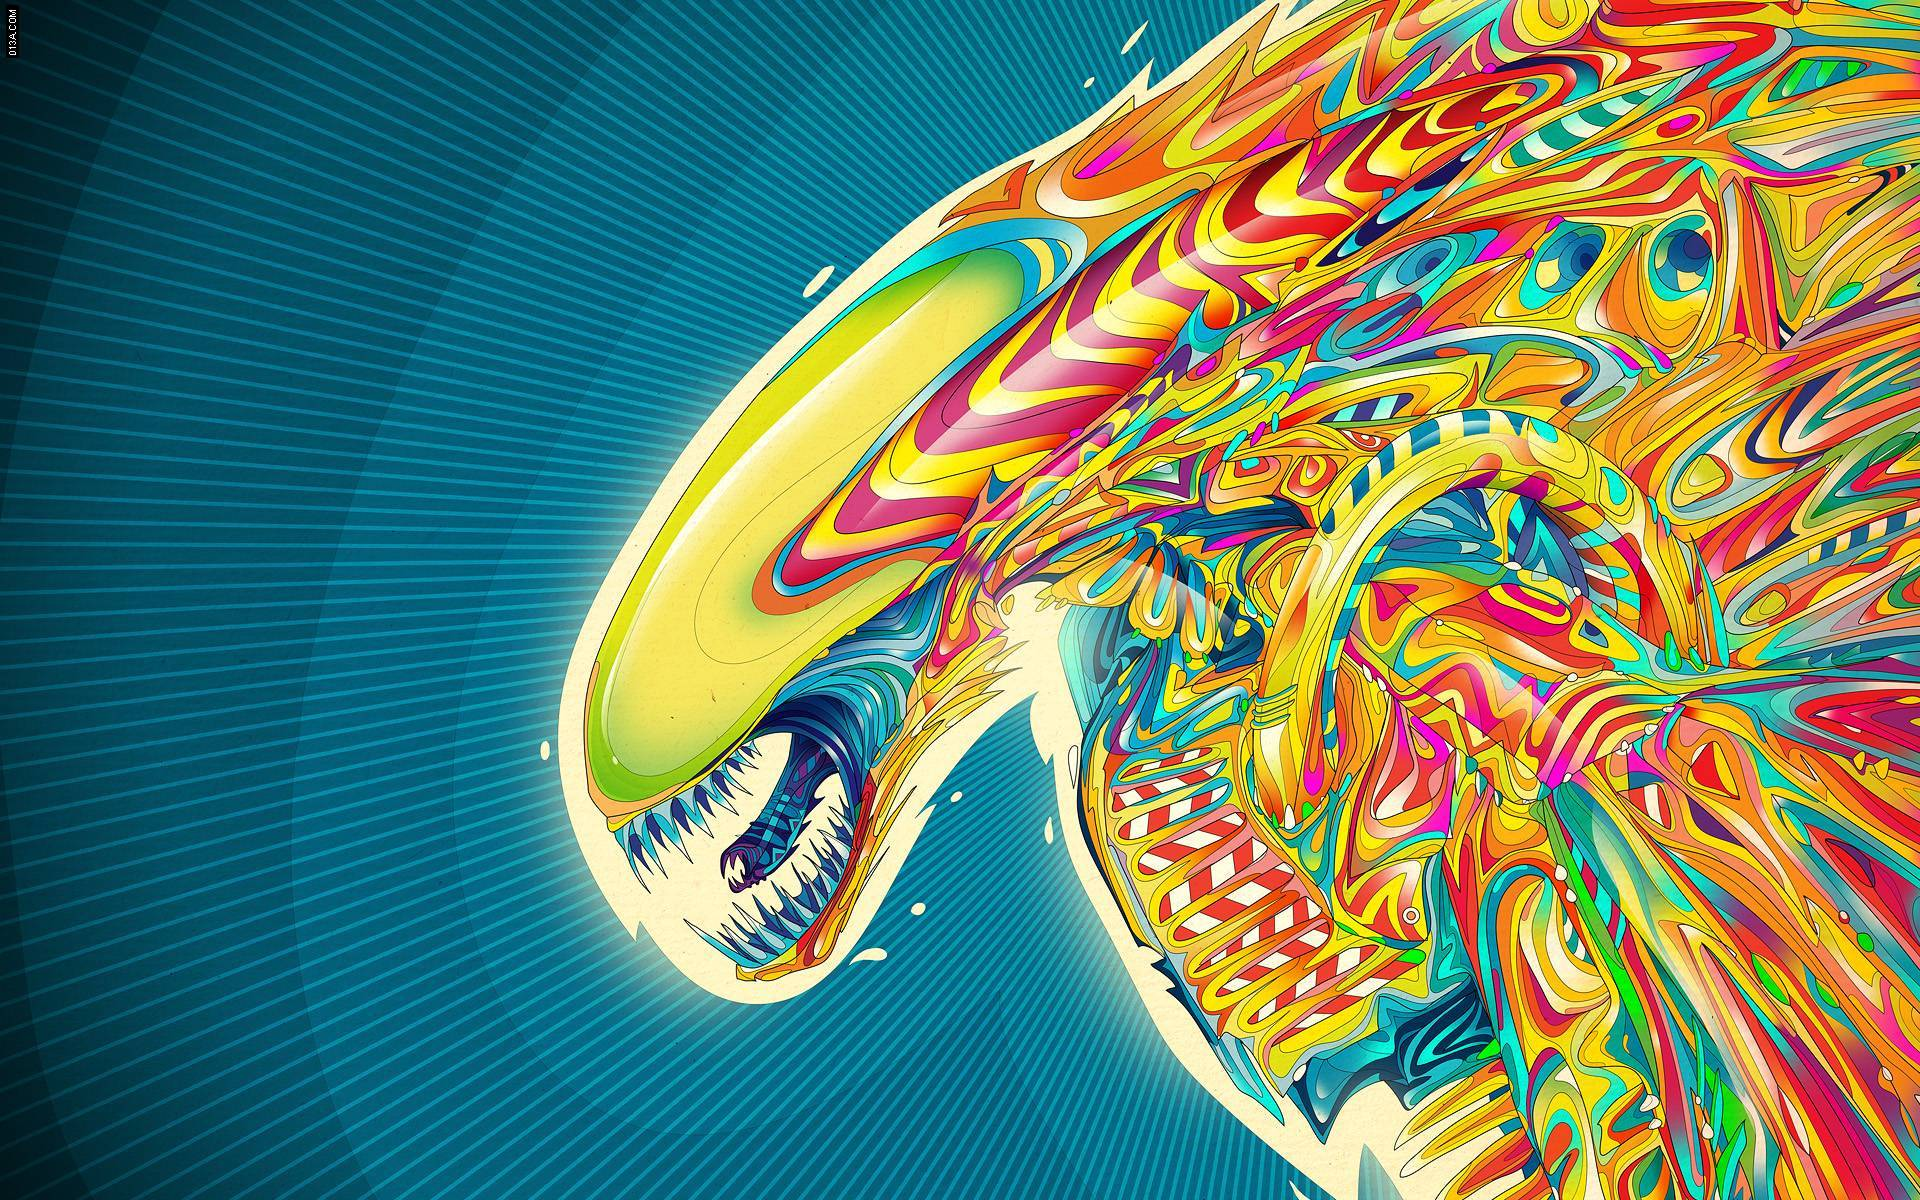 psychedelic hd 1080 wallpapers sexy - photo #29